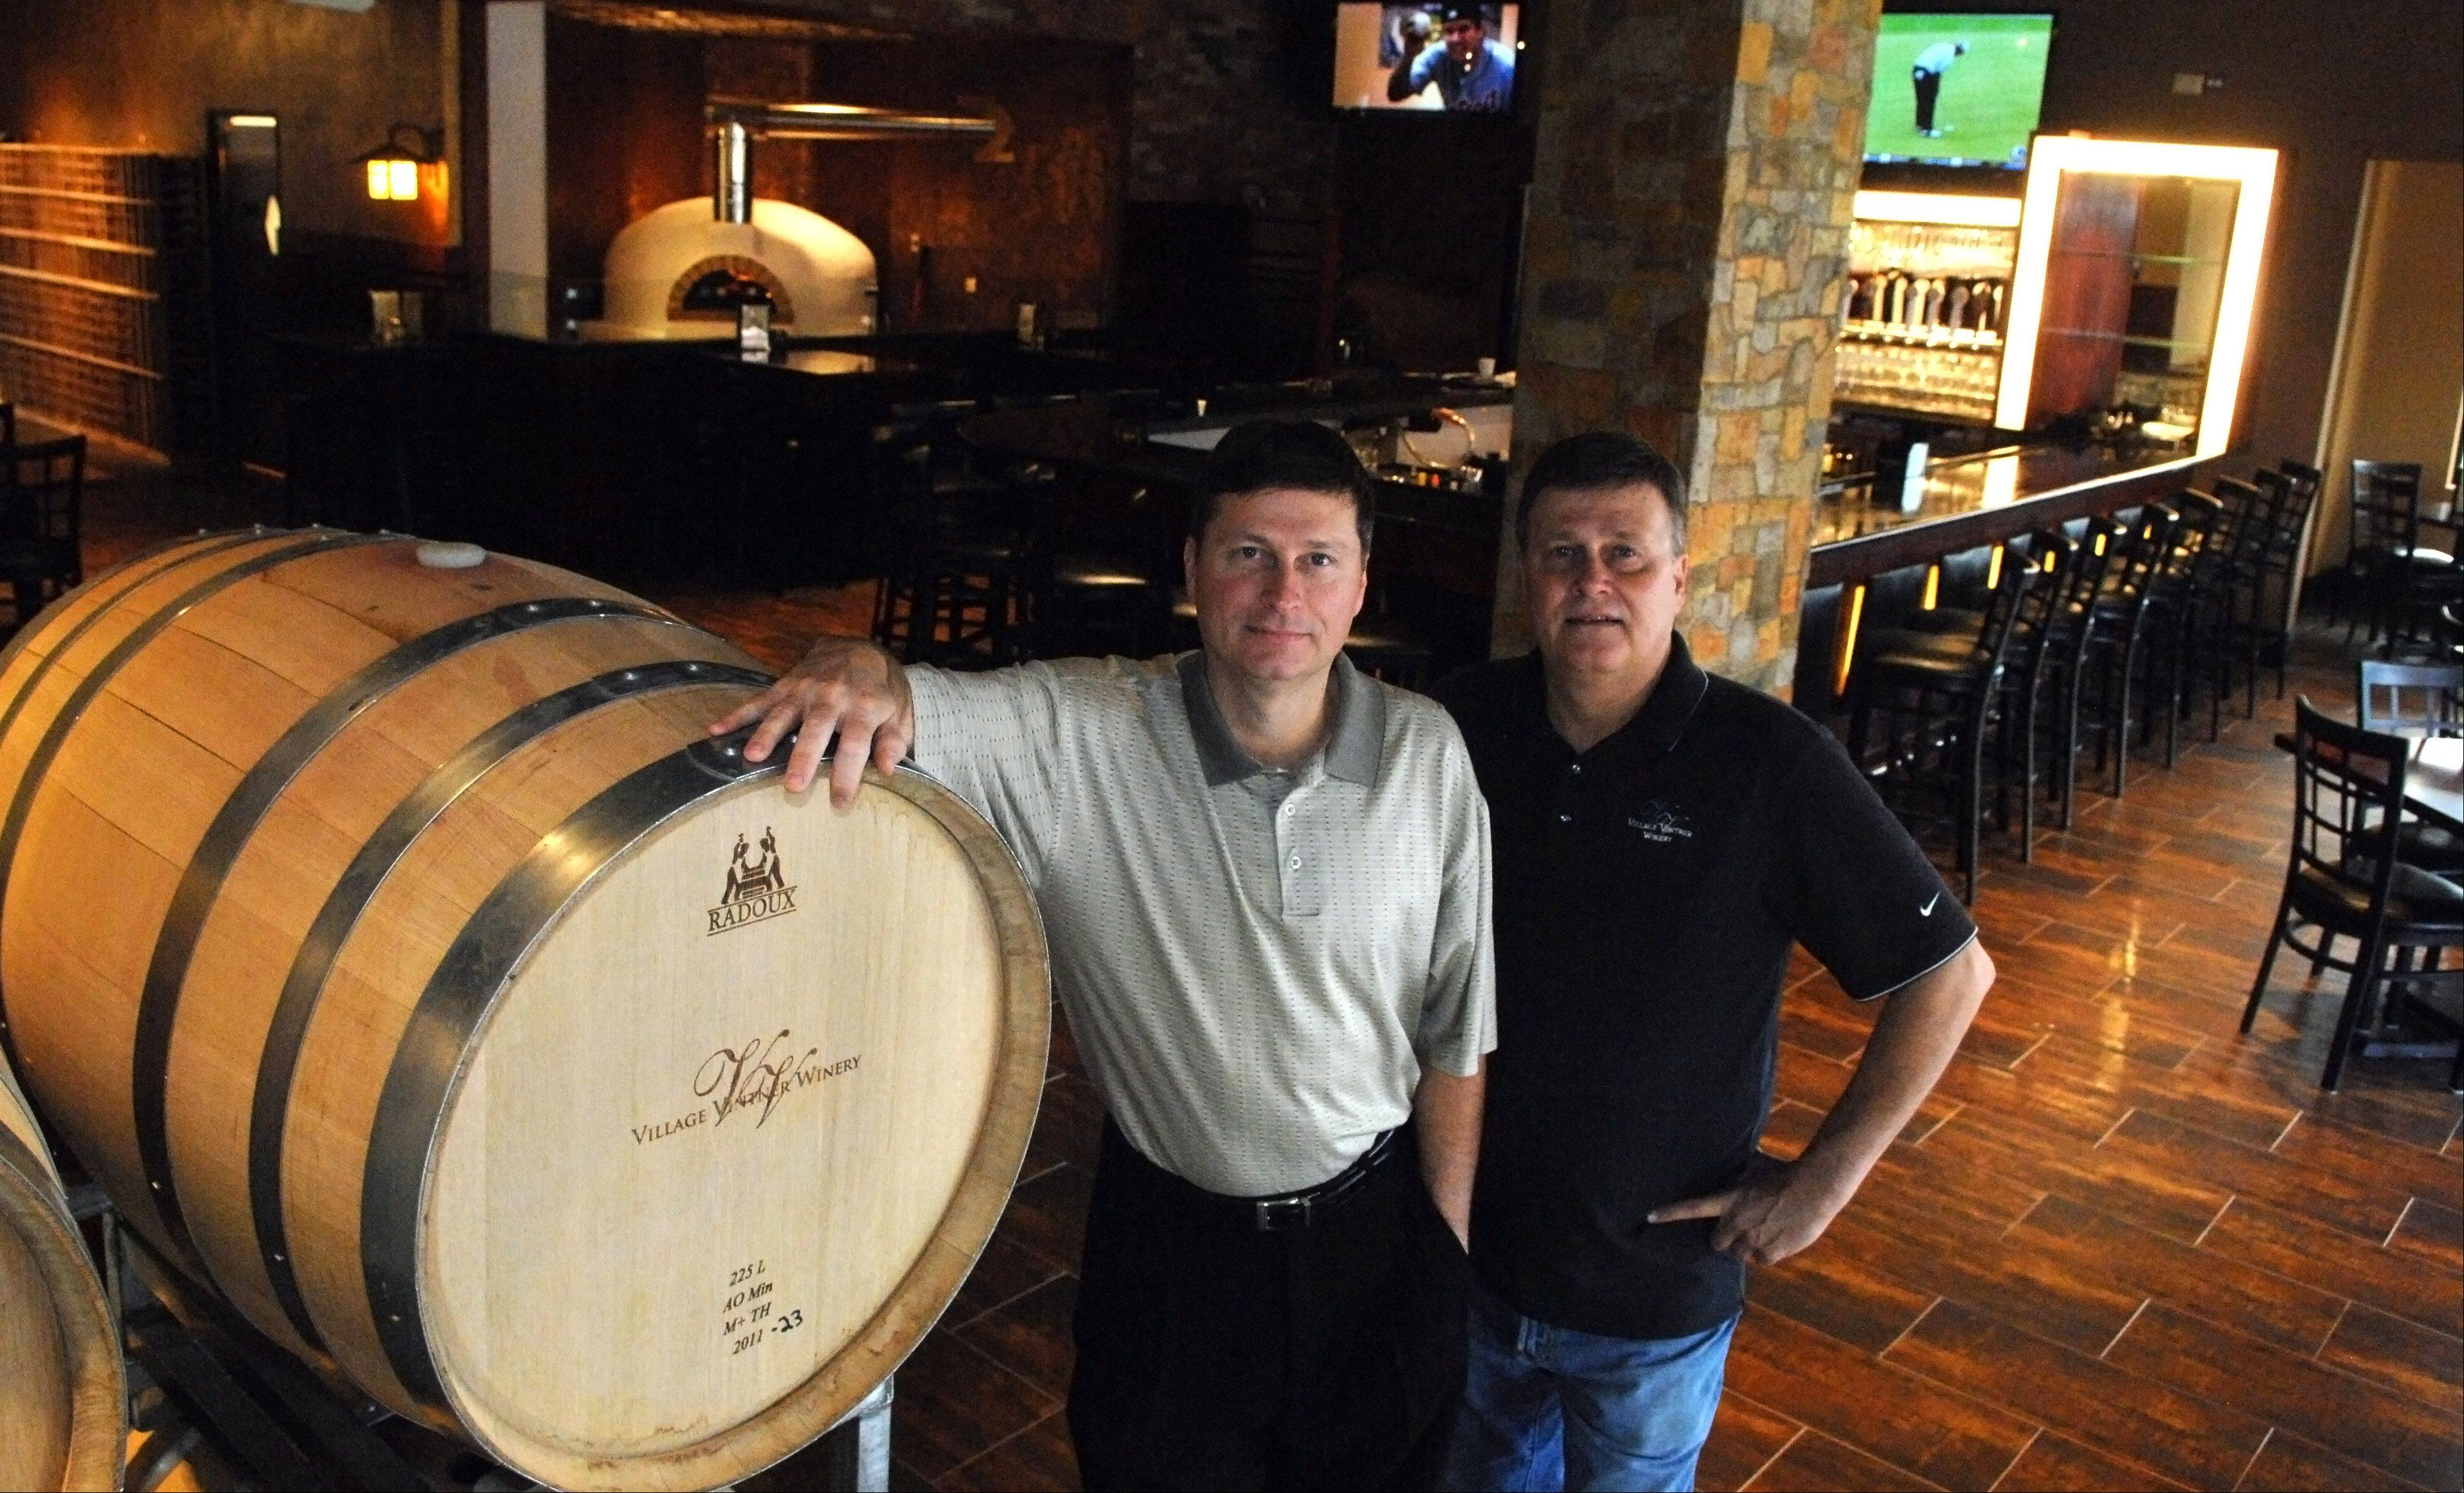 Bob, left, and Steve Boyer of The Village Vintner Winery and Brewery in Algonquin. The winery is now a full-service restaurant with a brewery as well, and has reopened in a new location.